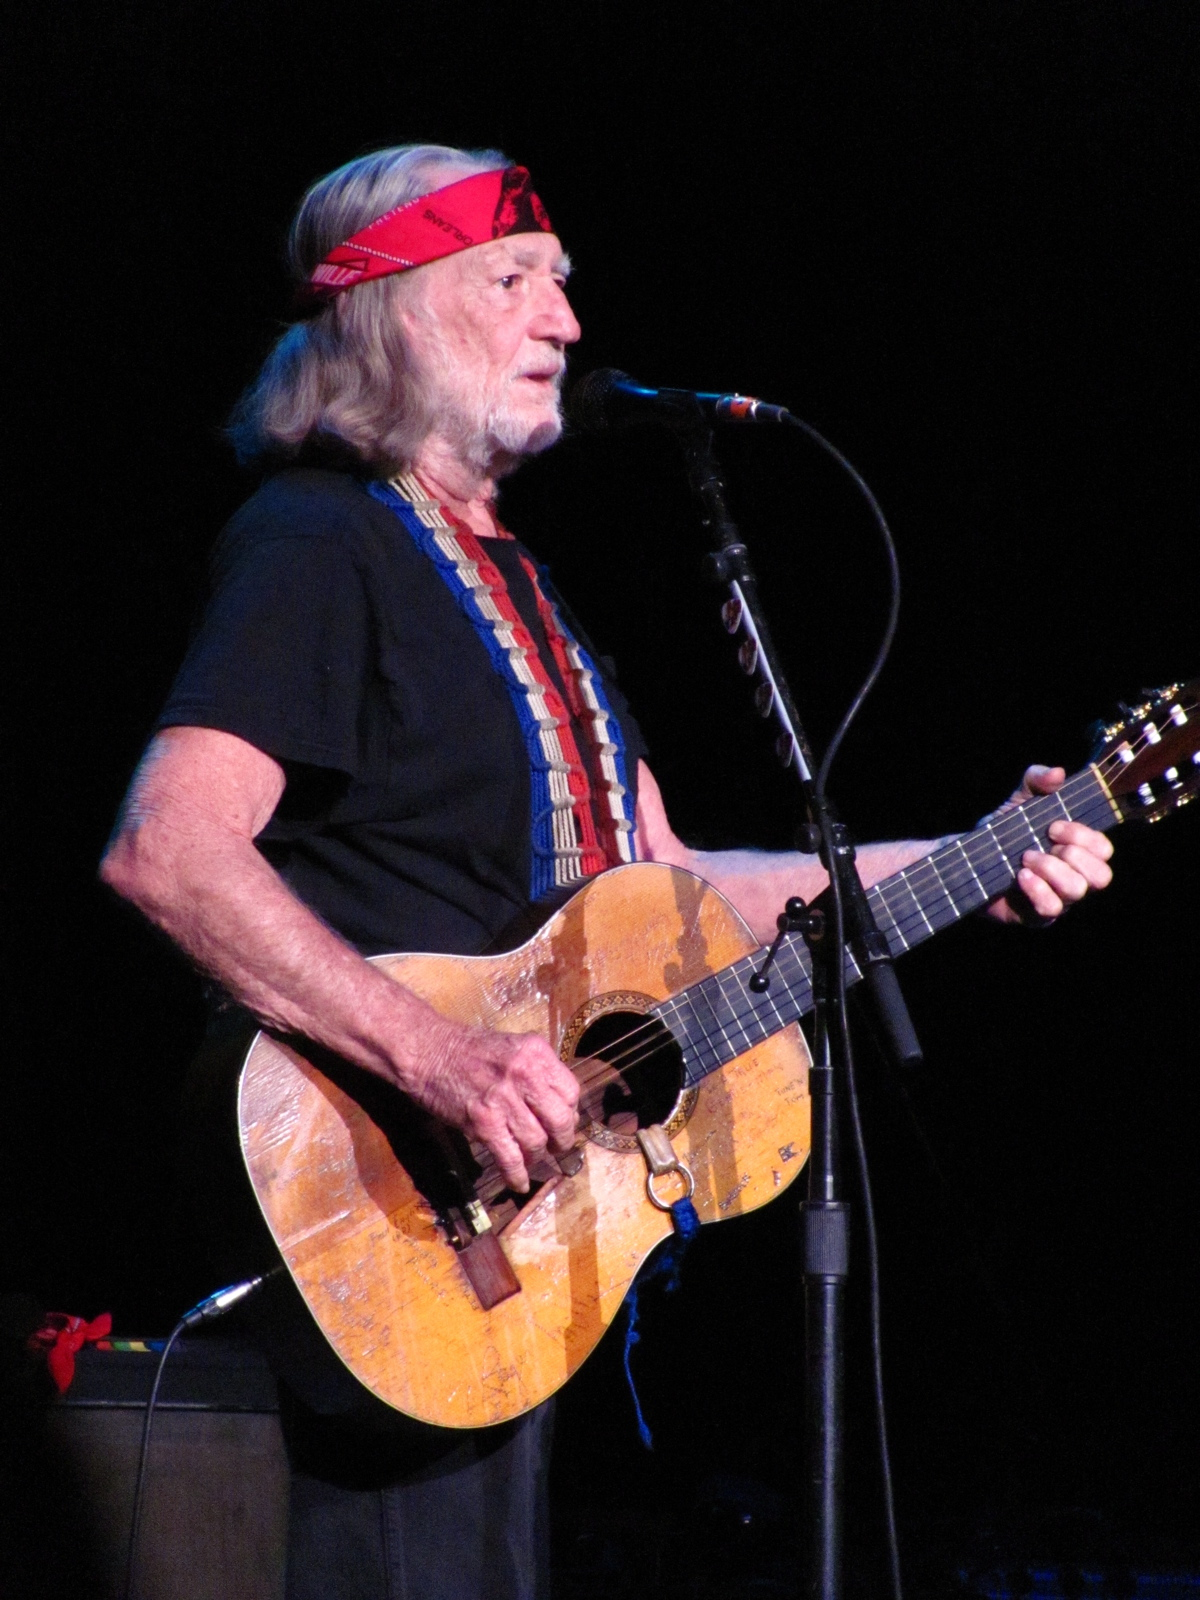 Who Is Willie Nelson Touring With